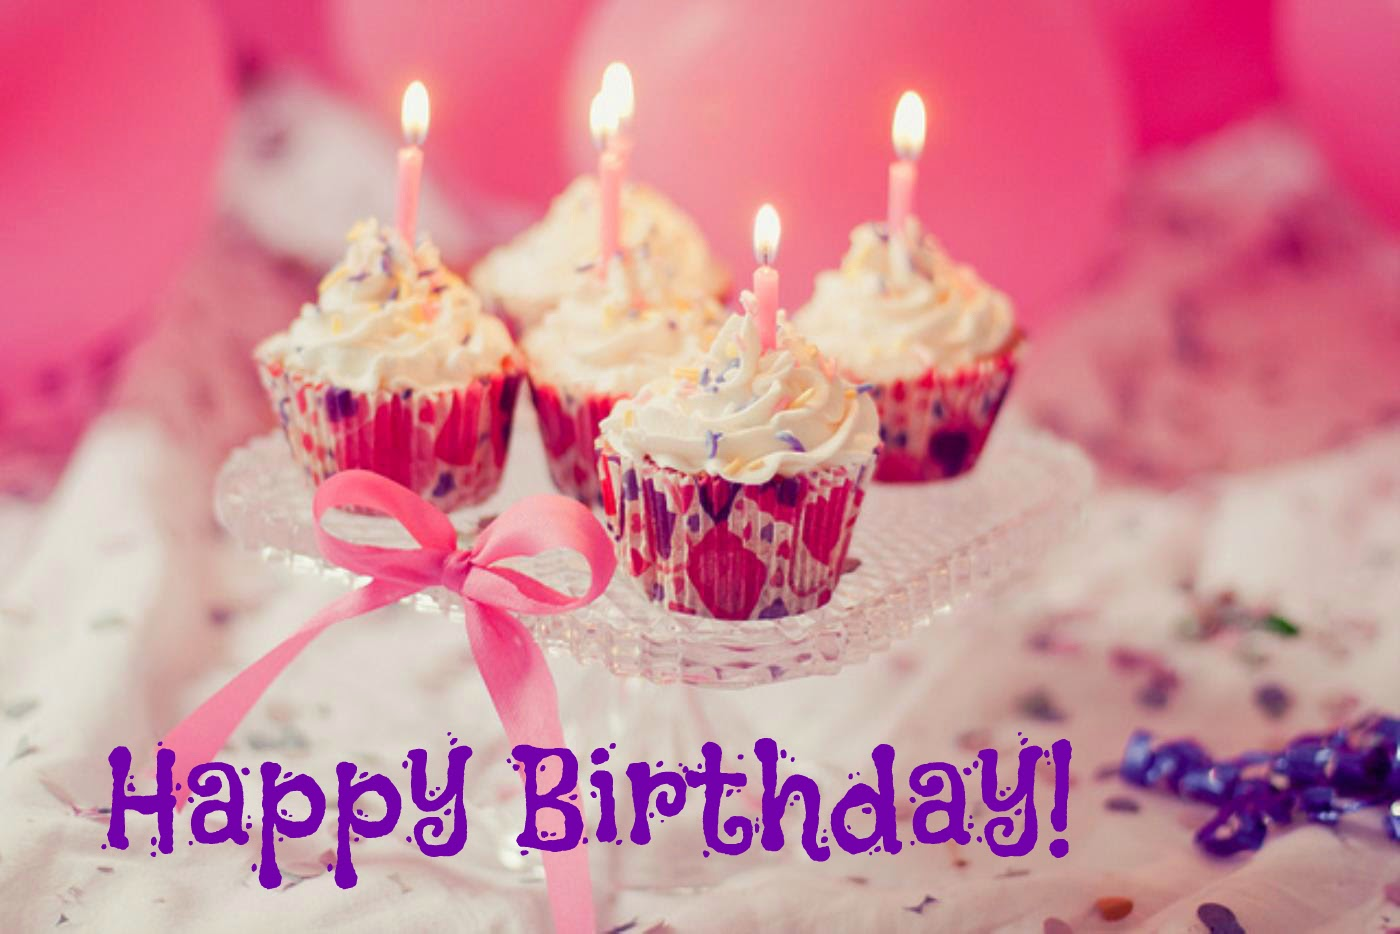 Pink-Happy-Birthday-Cup-cake-with-candles-images-girld-picture-1400x934.jpg